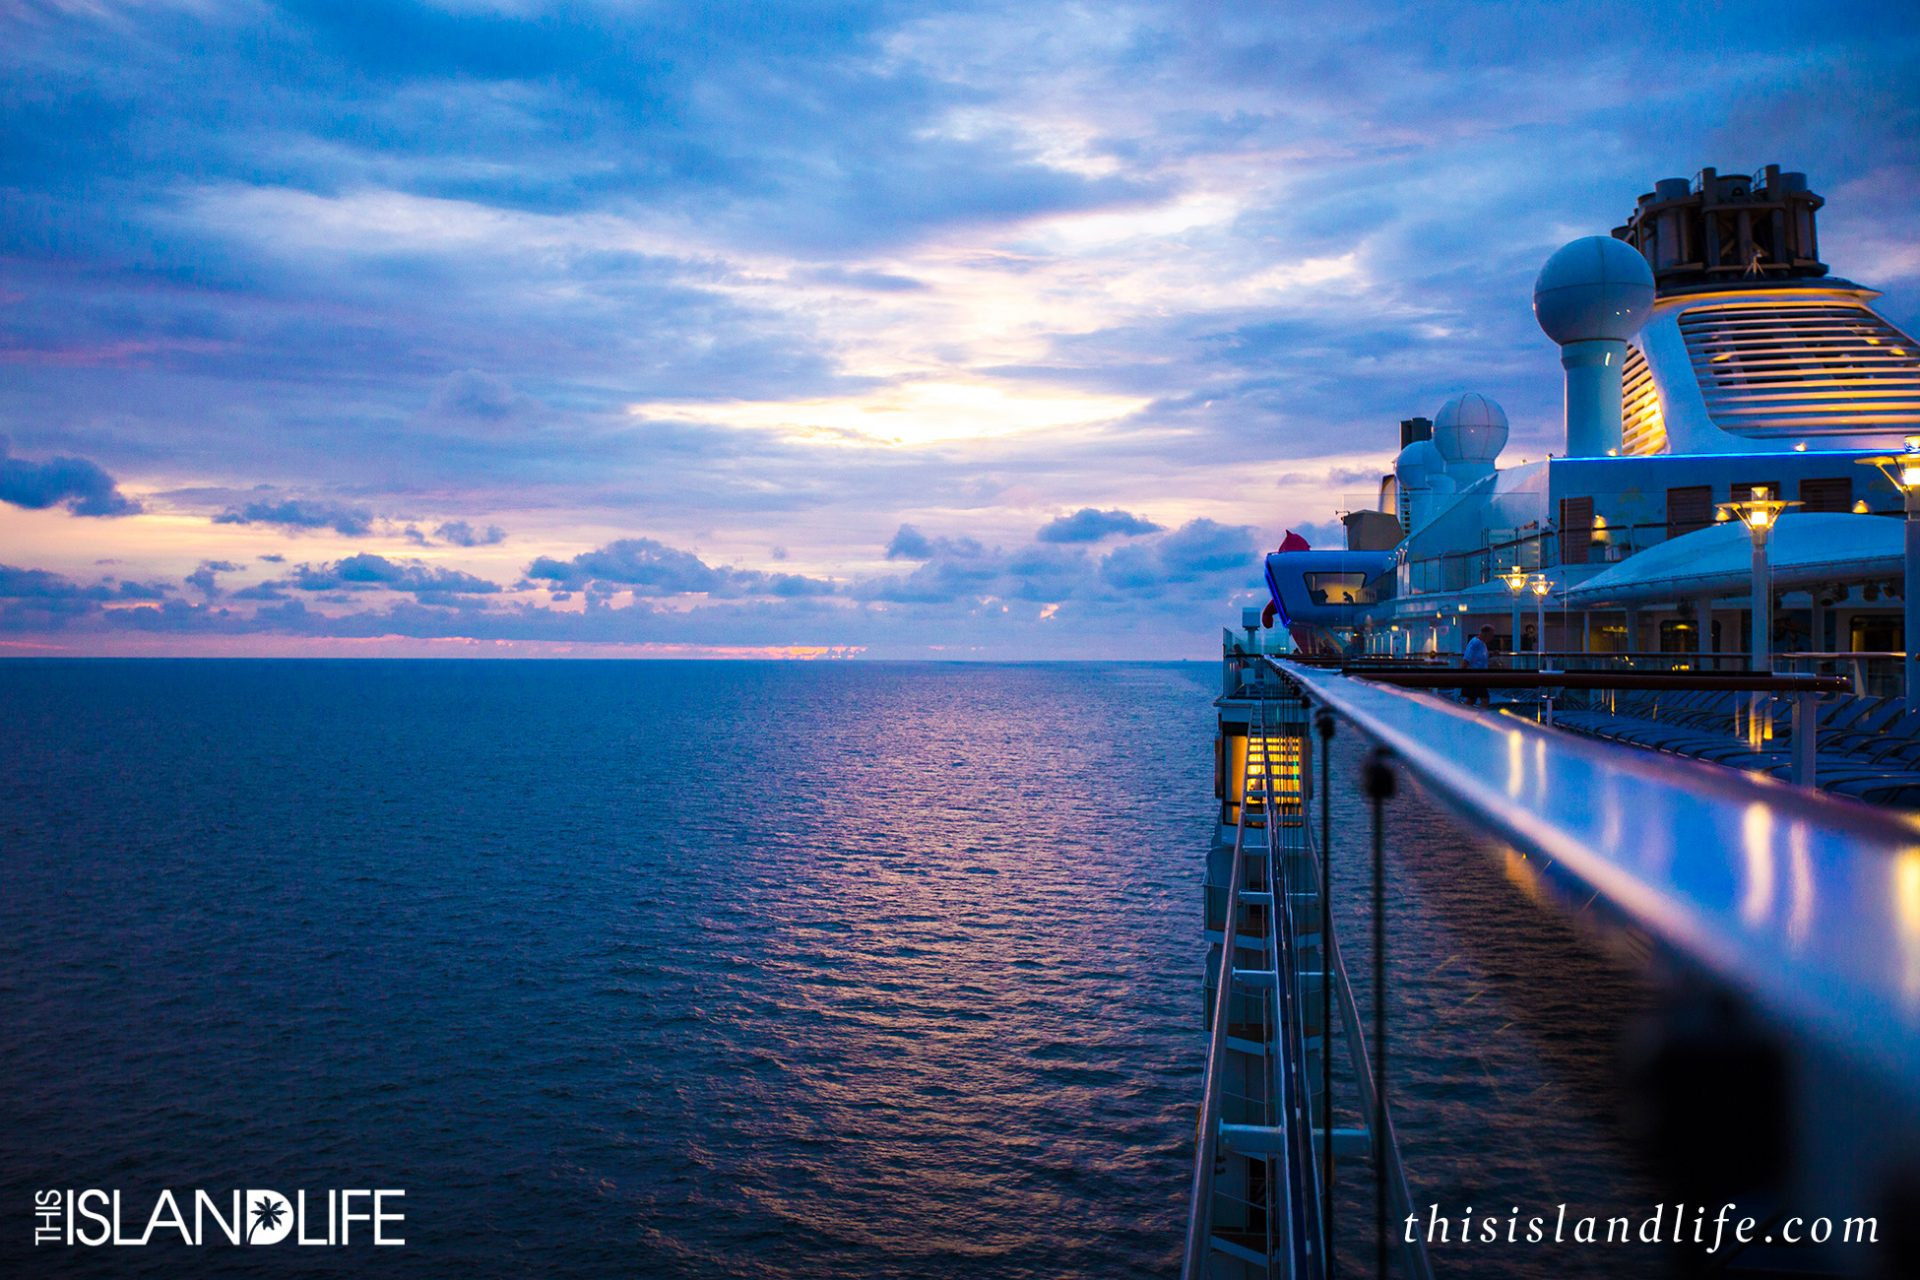 THIS ISLAND LIFE | Cruising the high seas with Royal Carribean